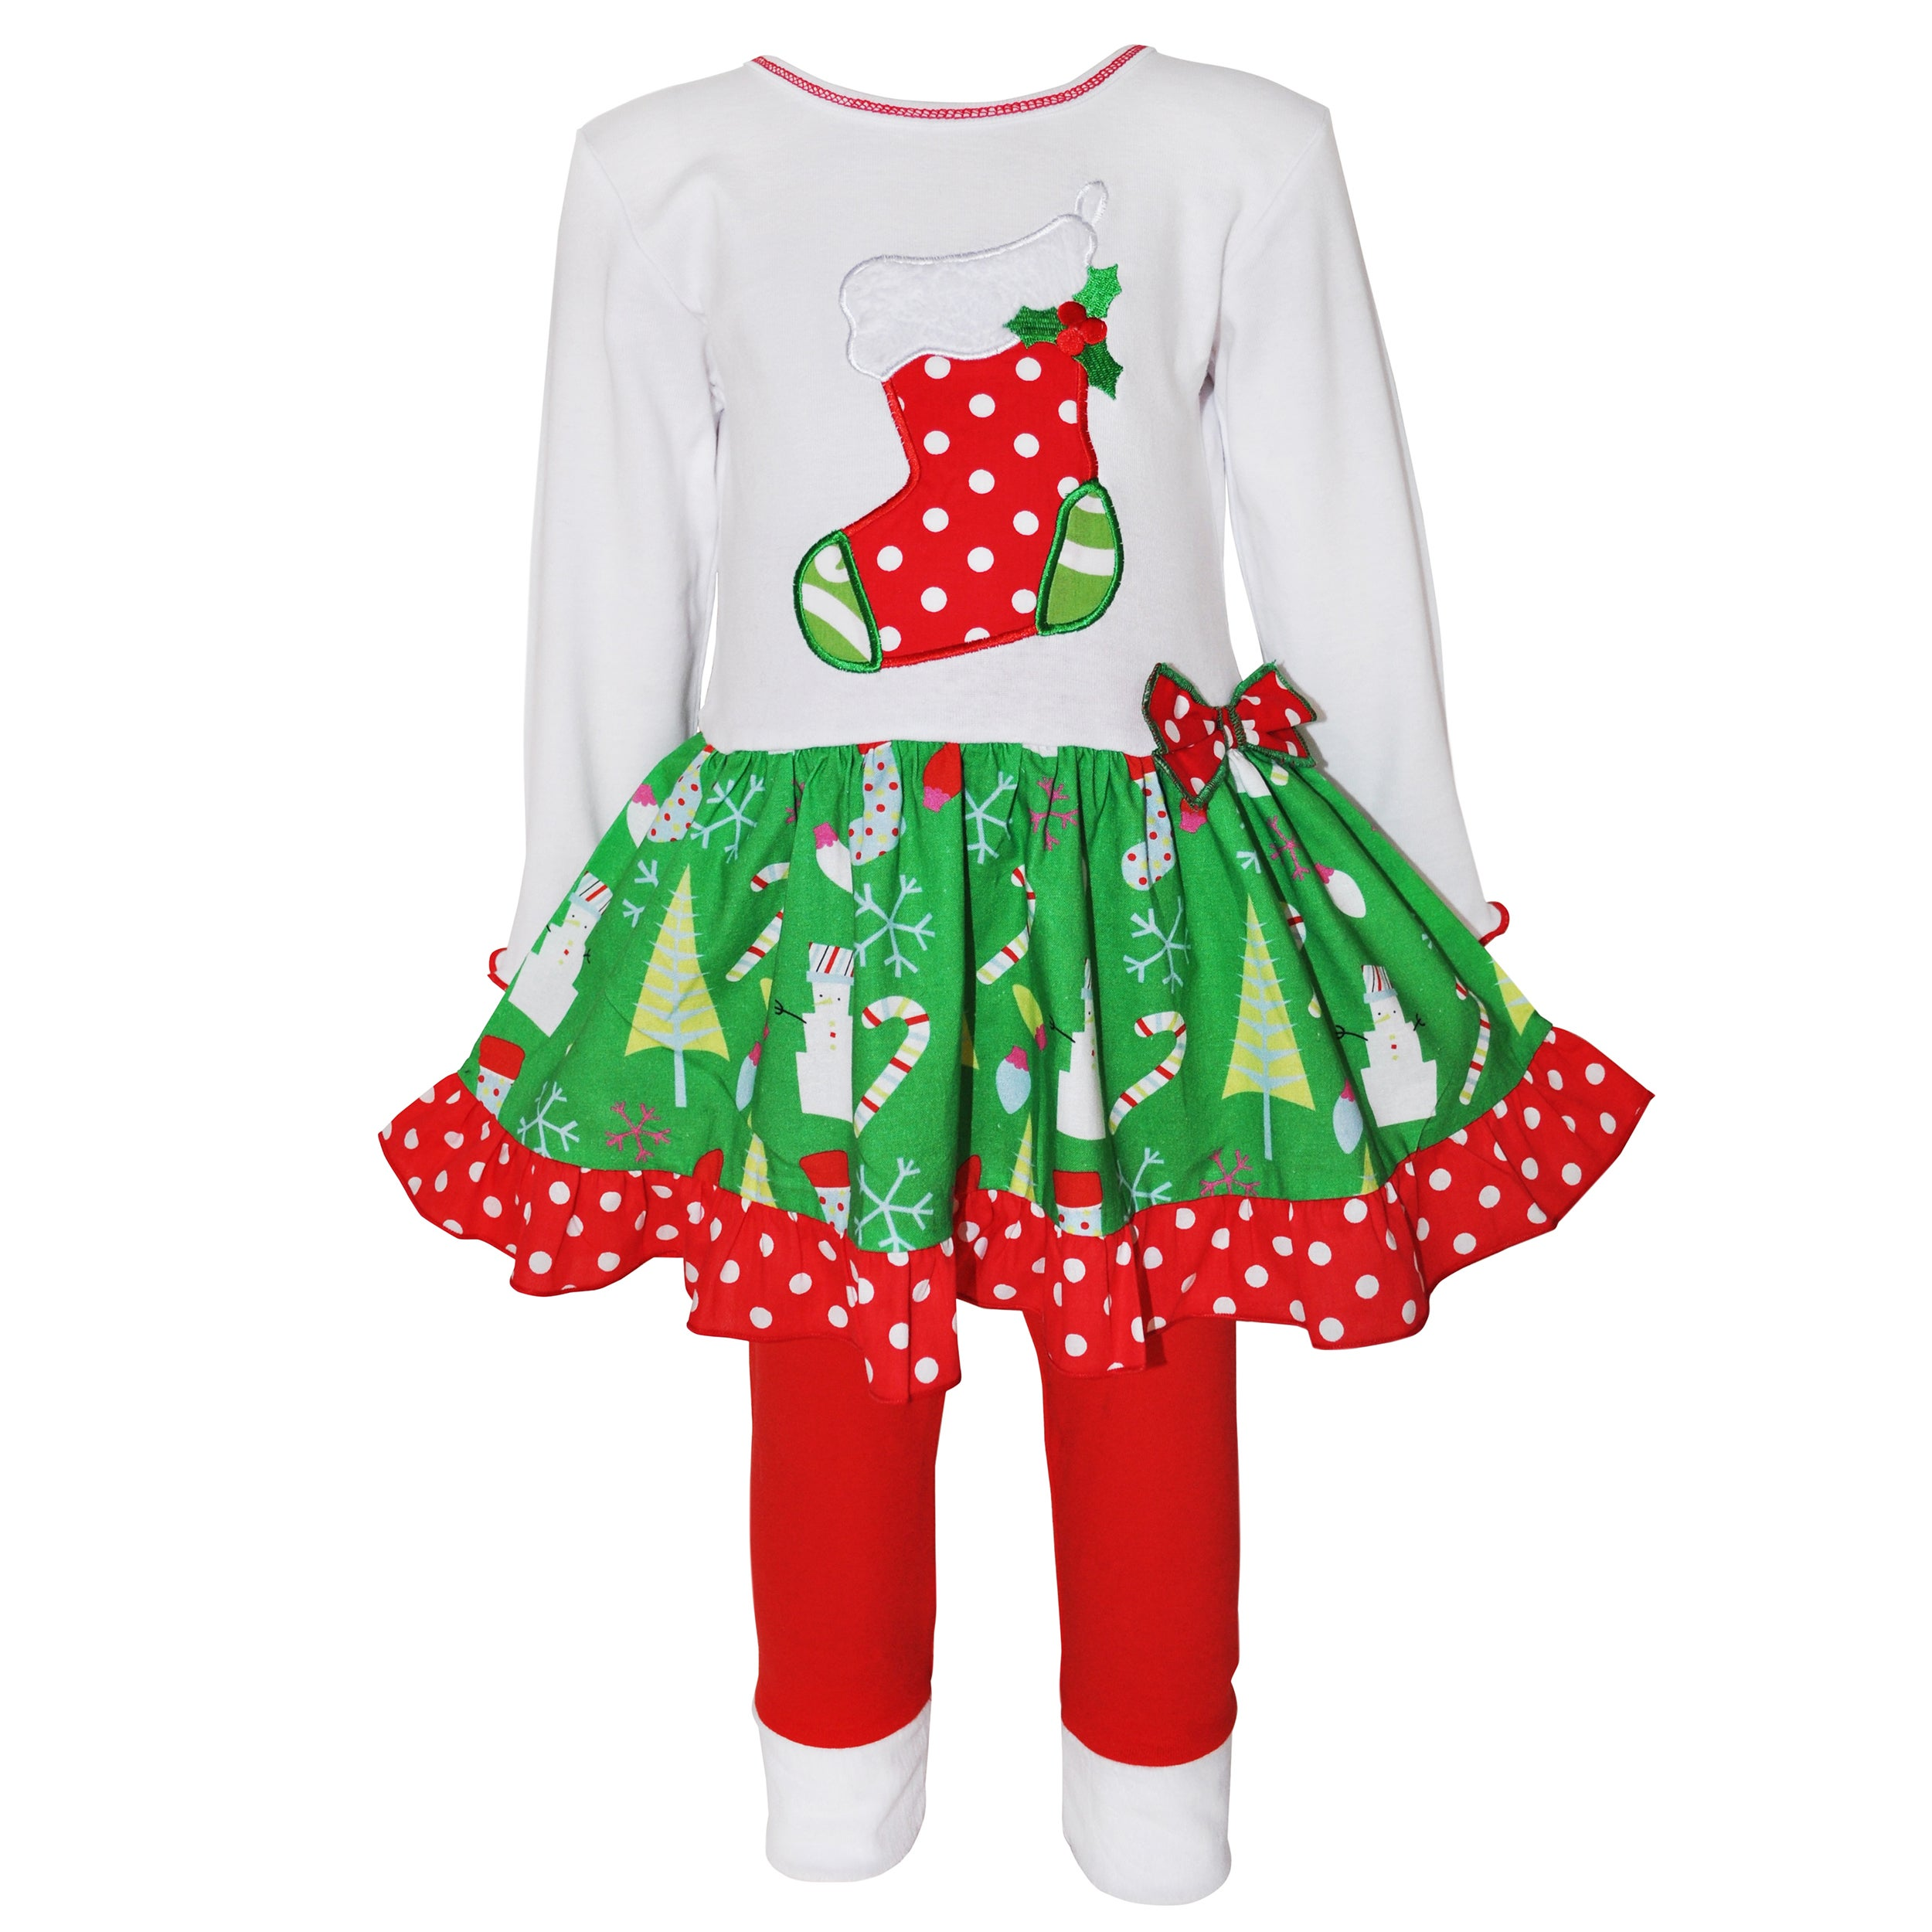 AnnLoren AnnLoren Girls' Christmas Stocking Drop-waist Dr...